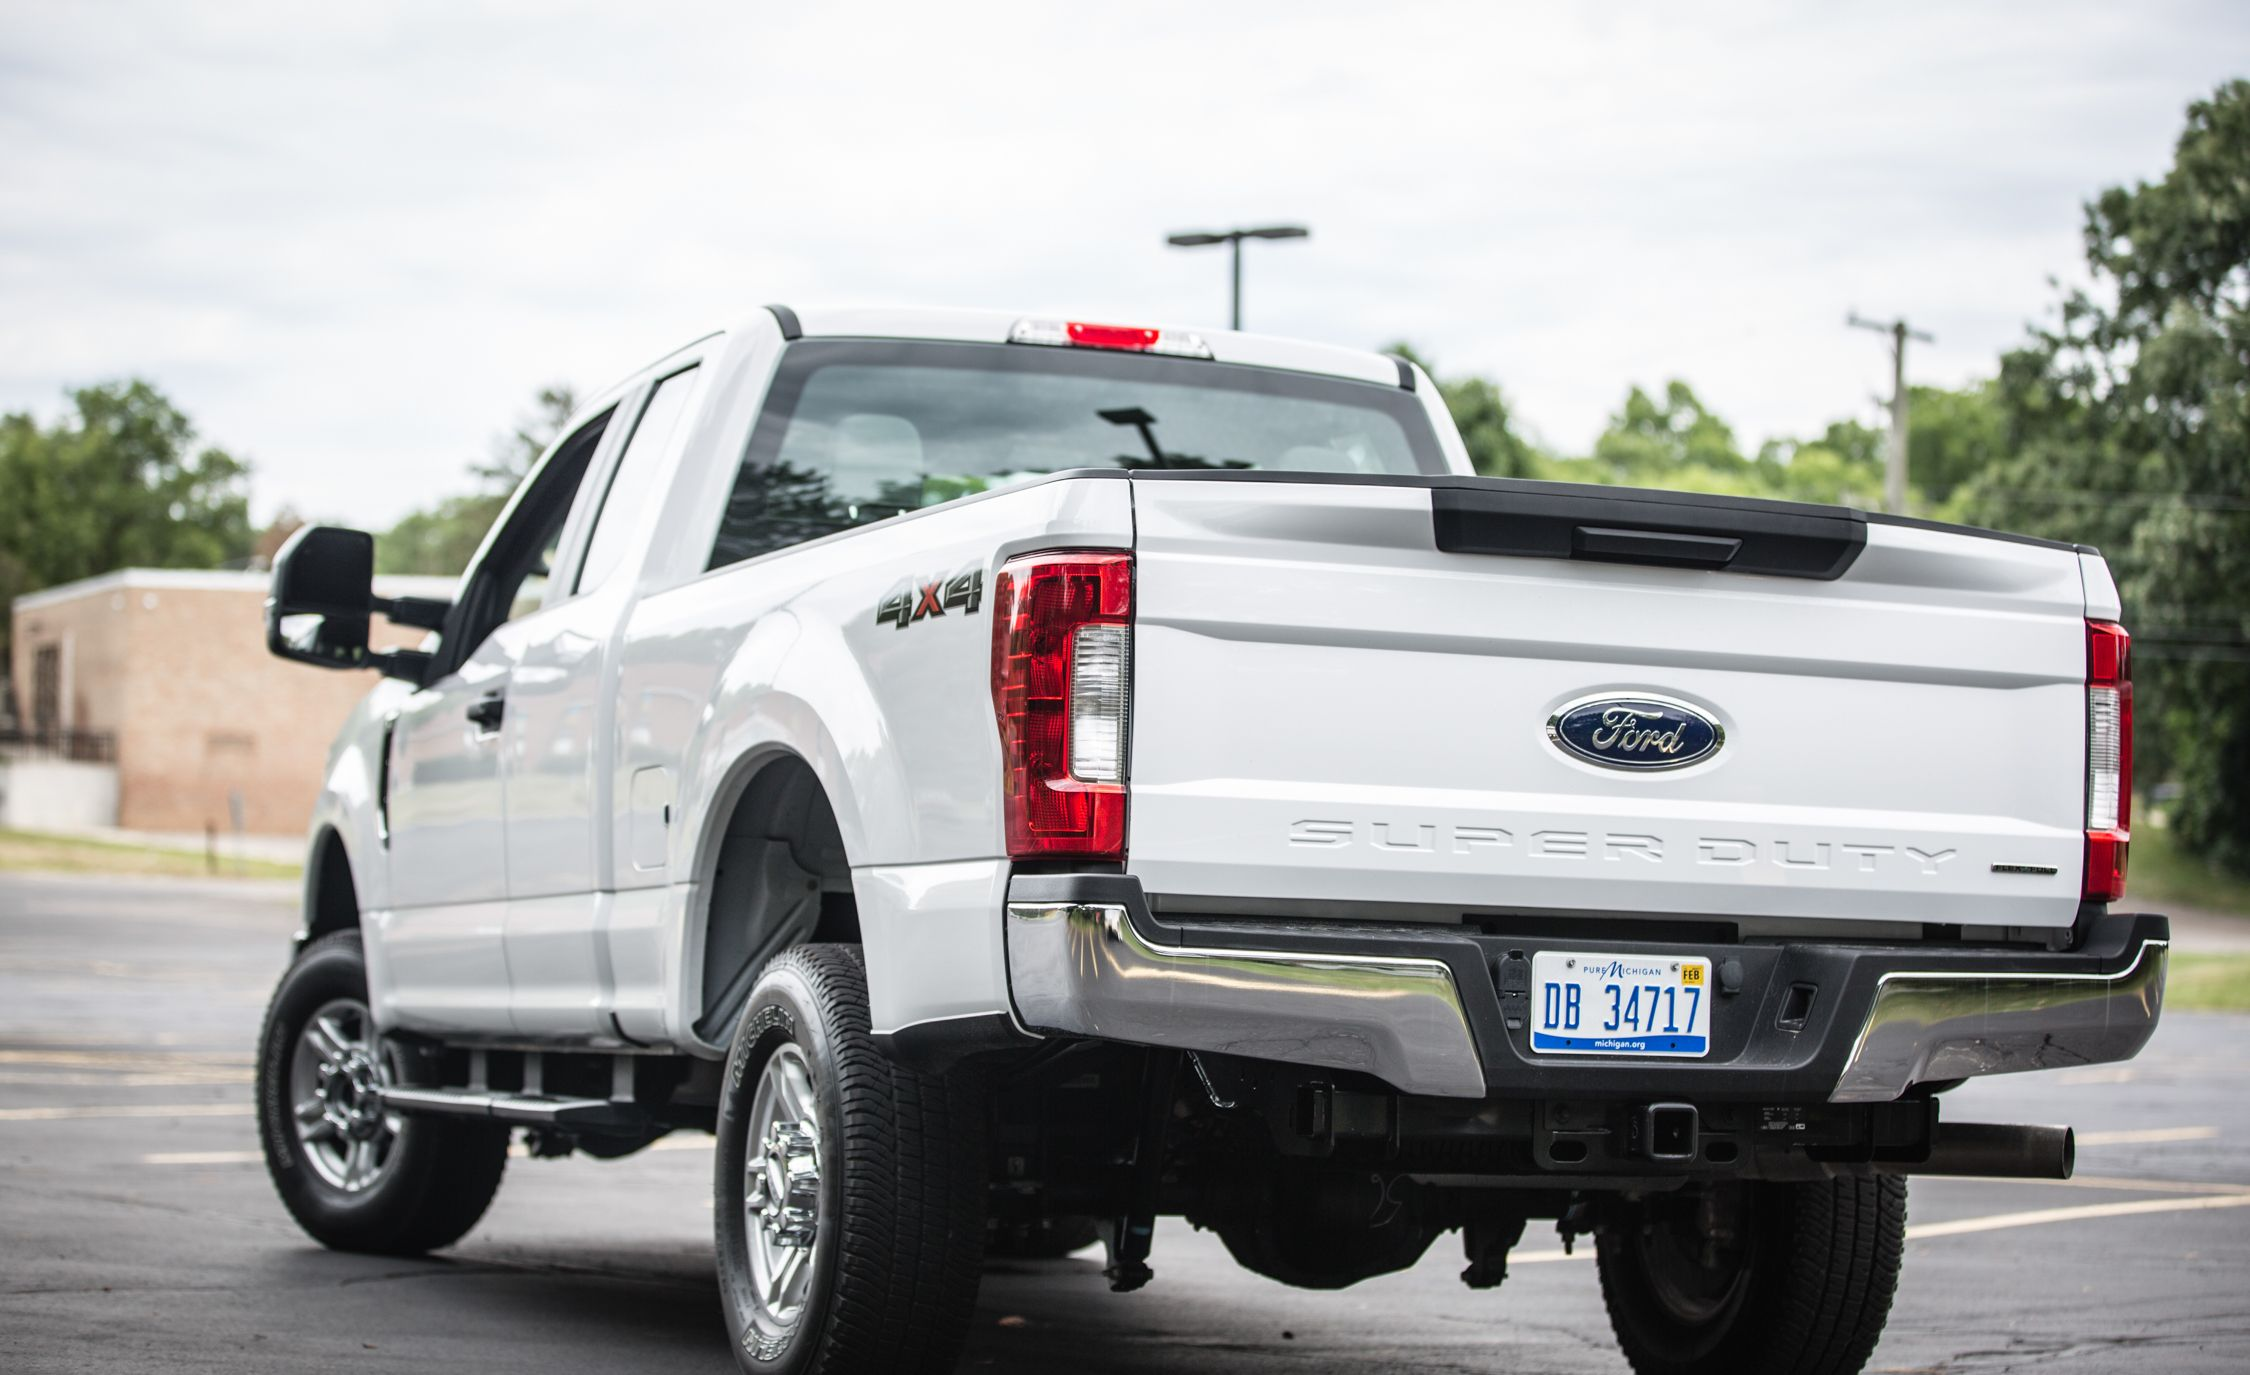 2017 Ford Super Duty Pickups in NHTSA Probe of Faulty Tailgate